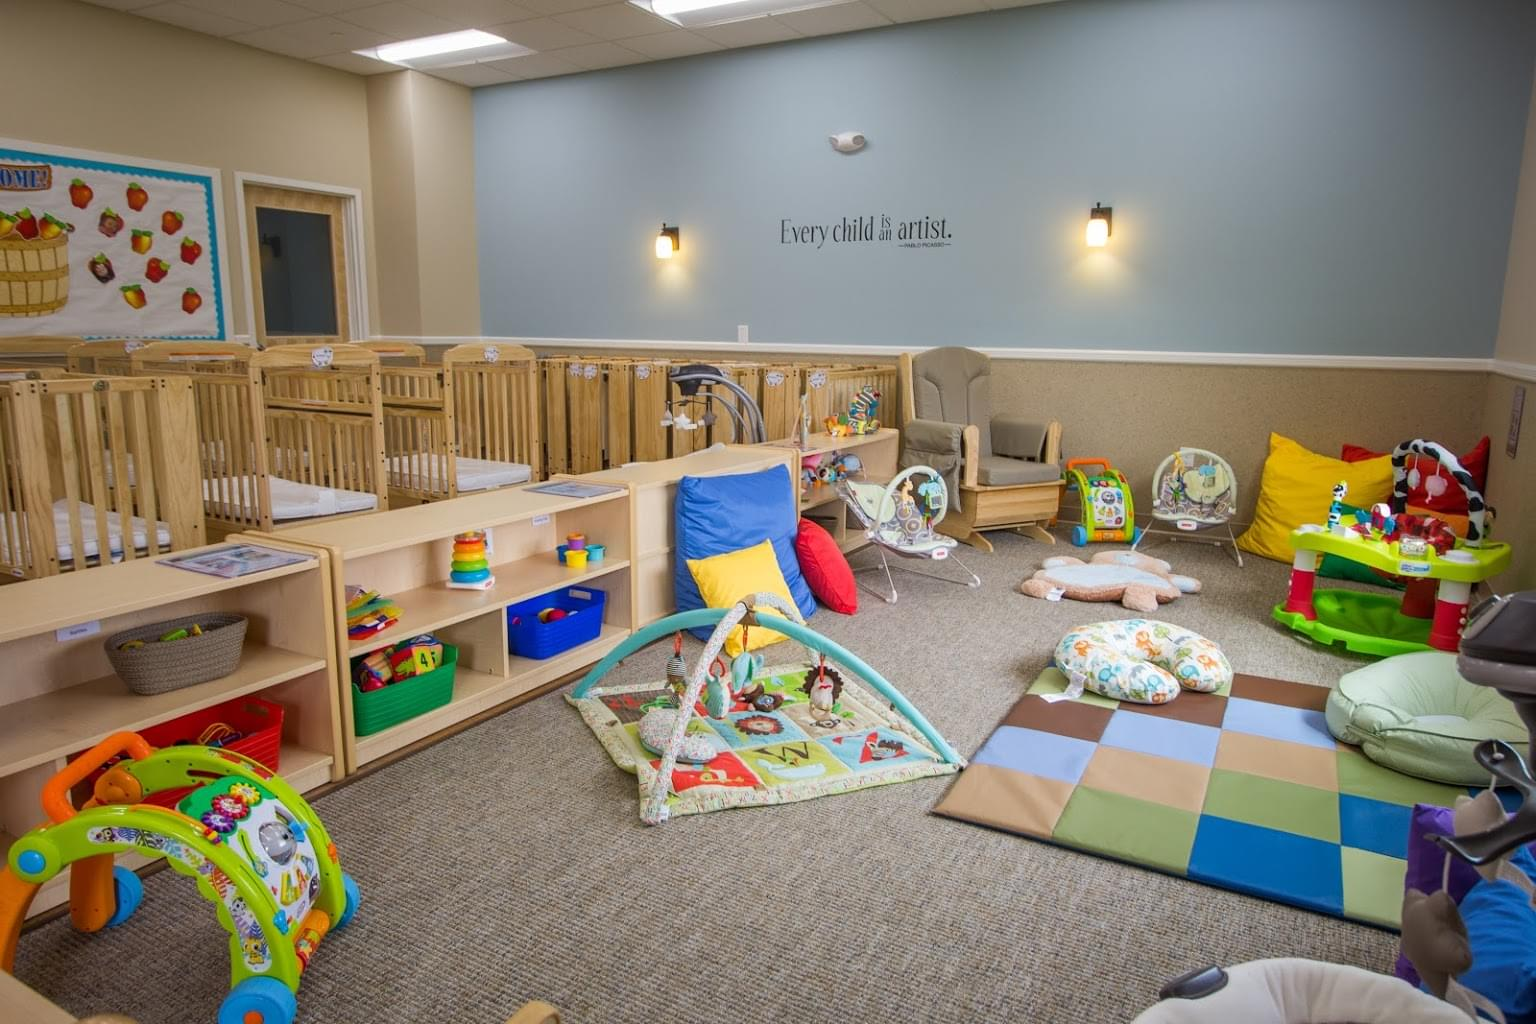 Lightbridge Academy pre-school in Allentown, PA infant room